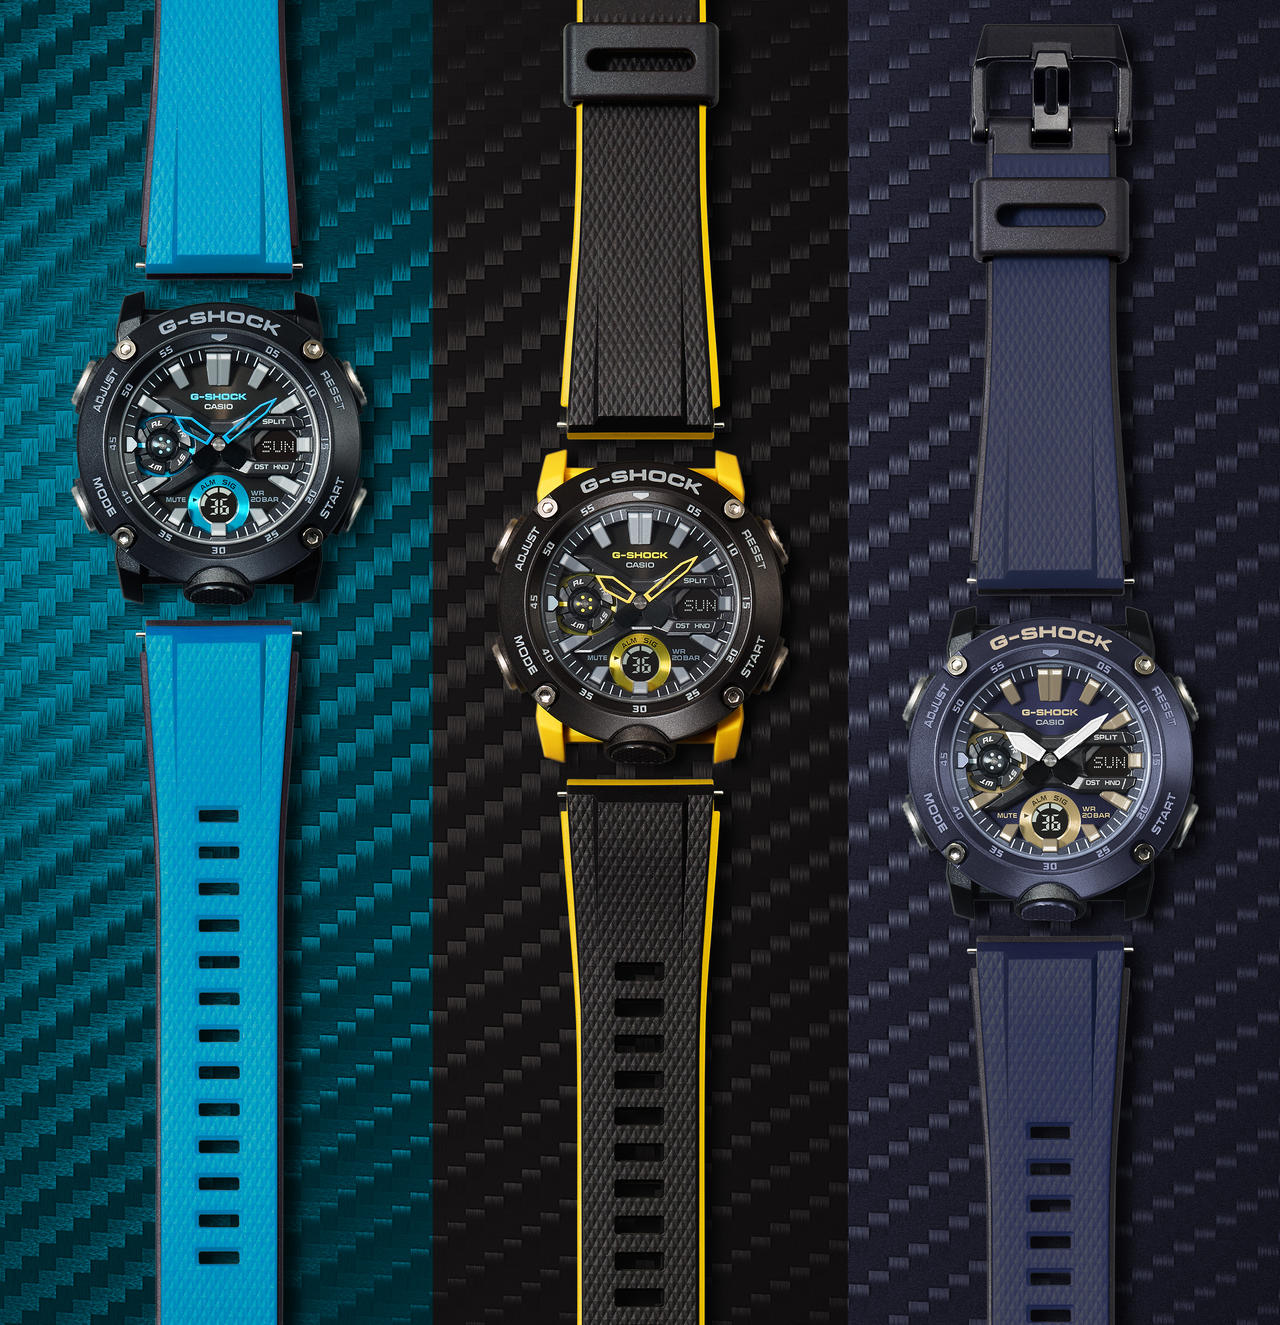 Change Your Colors with G-SHOCK's New Interchangeable Bands Models